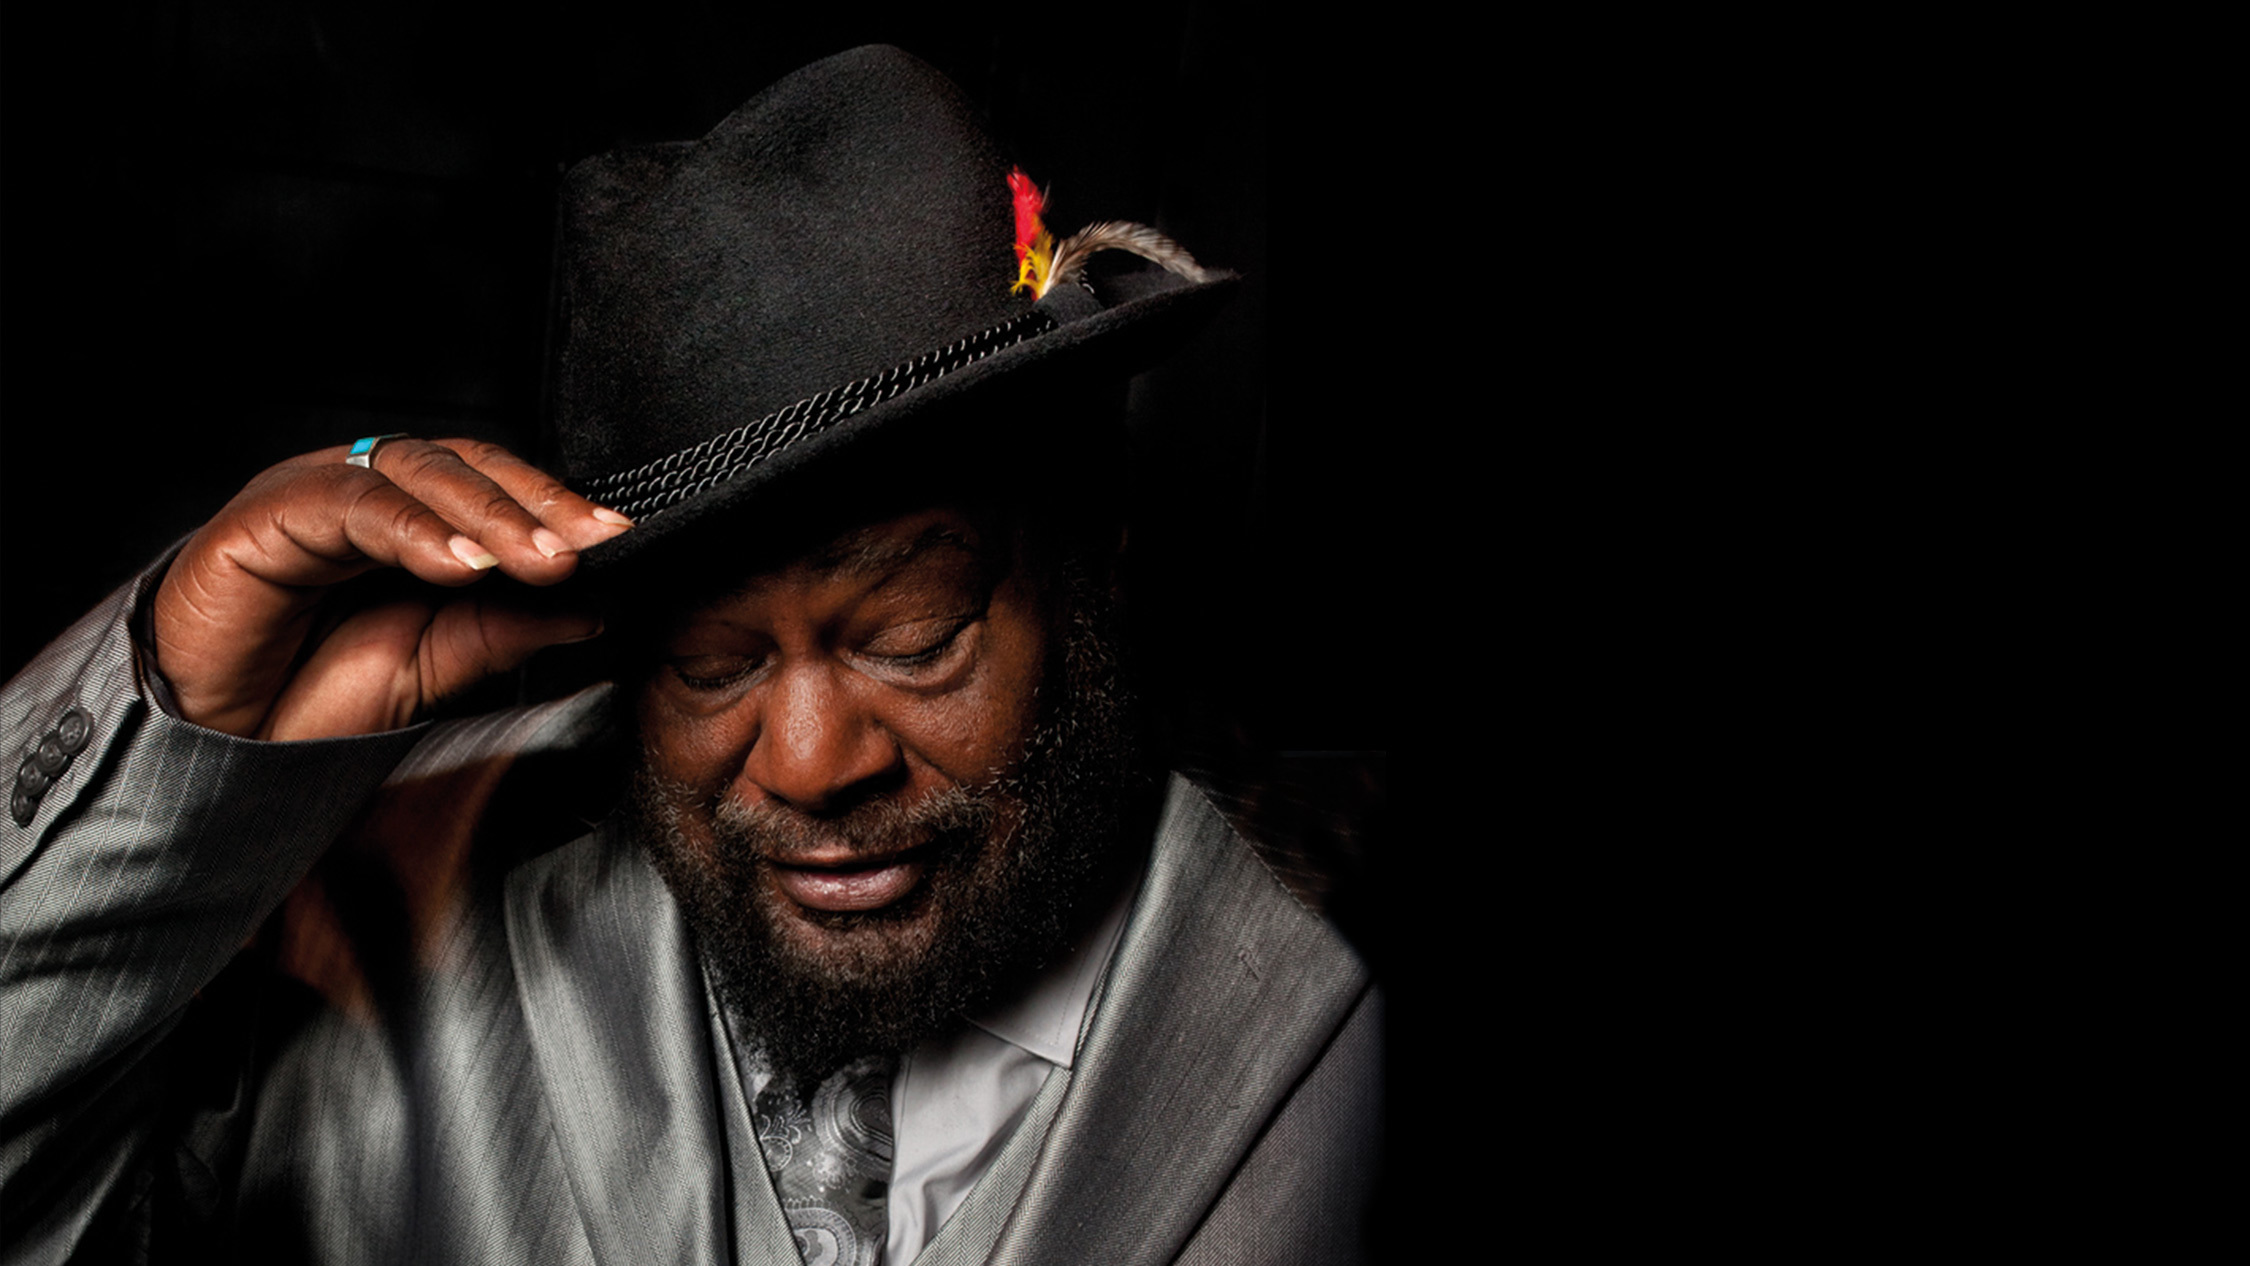 George Clinton wears a hat.